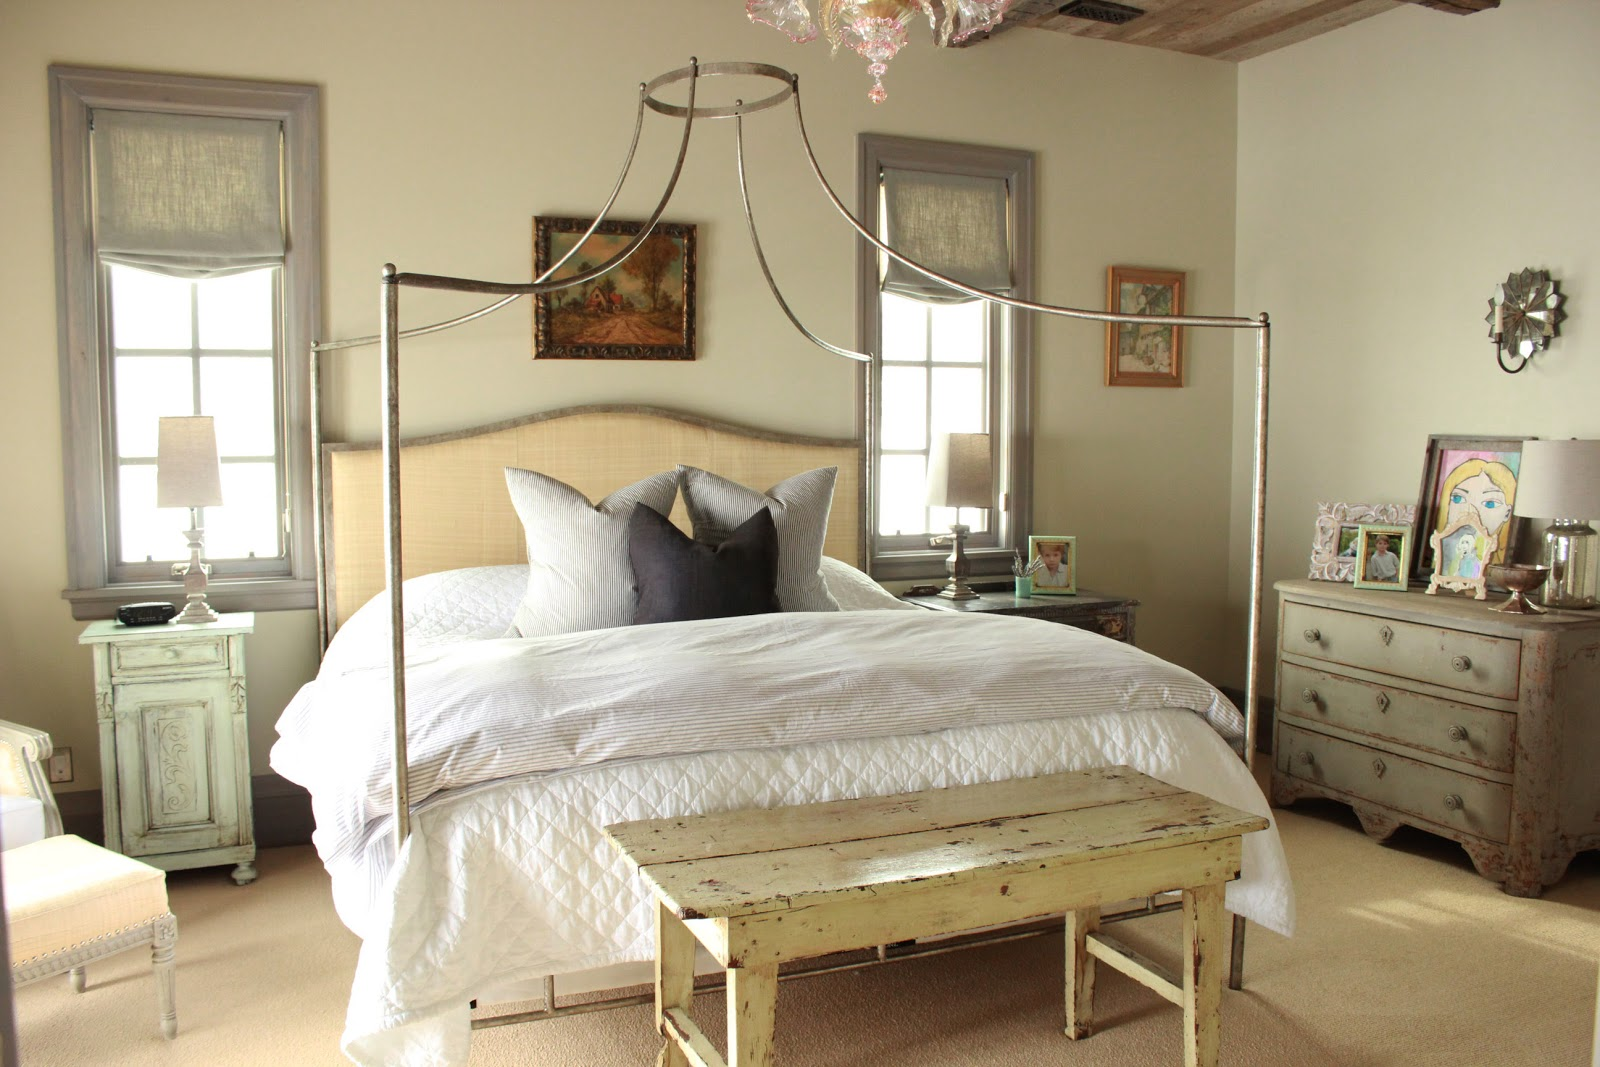 French farmhouse in utah home decor inspiration hello for Rustic french bedroom